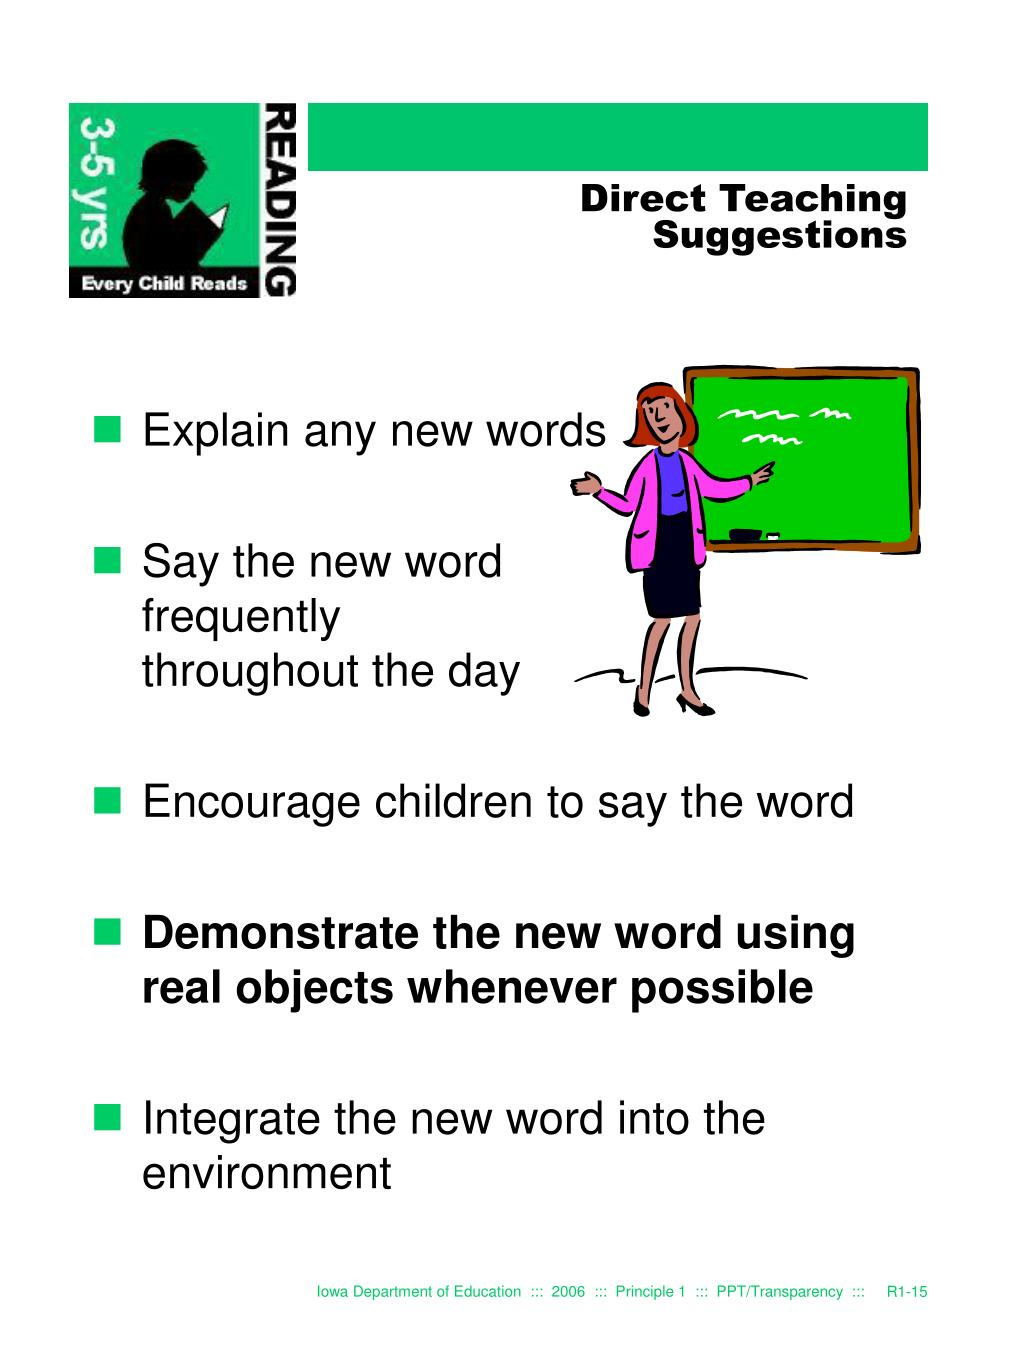 Direct Teaching Suggestions